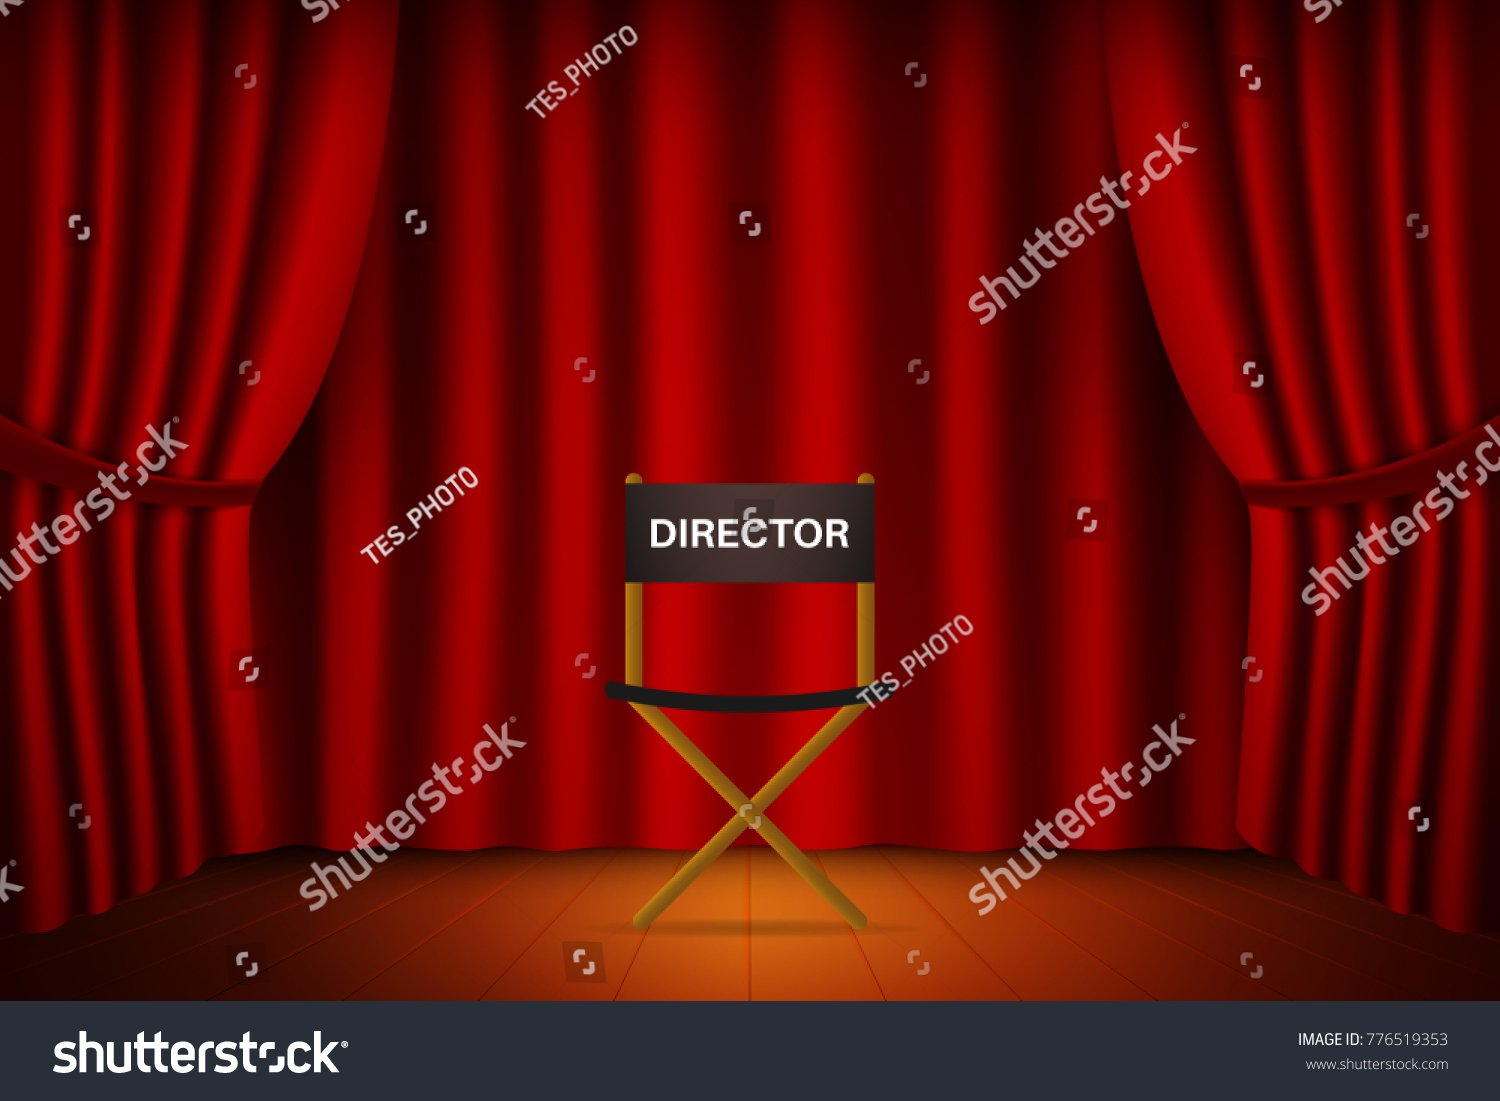 Cinema Theater Show Set Theater Stage Stock Vector 776519353 ...